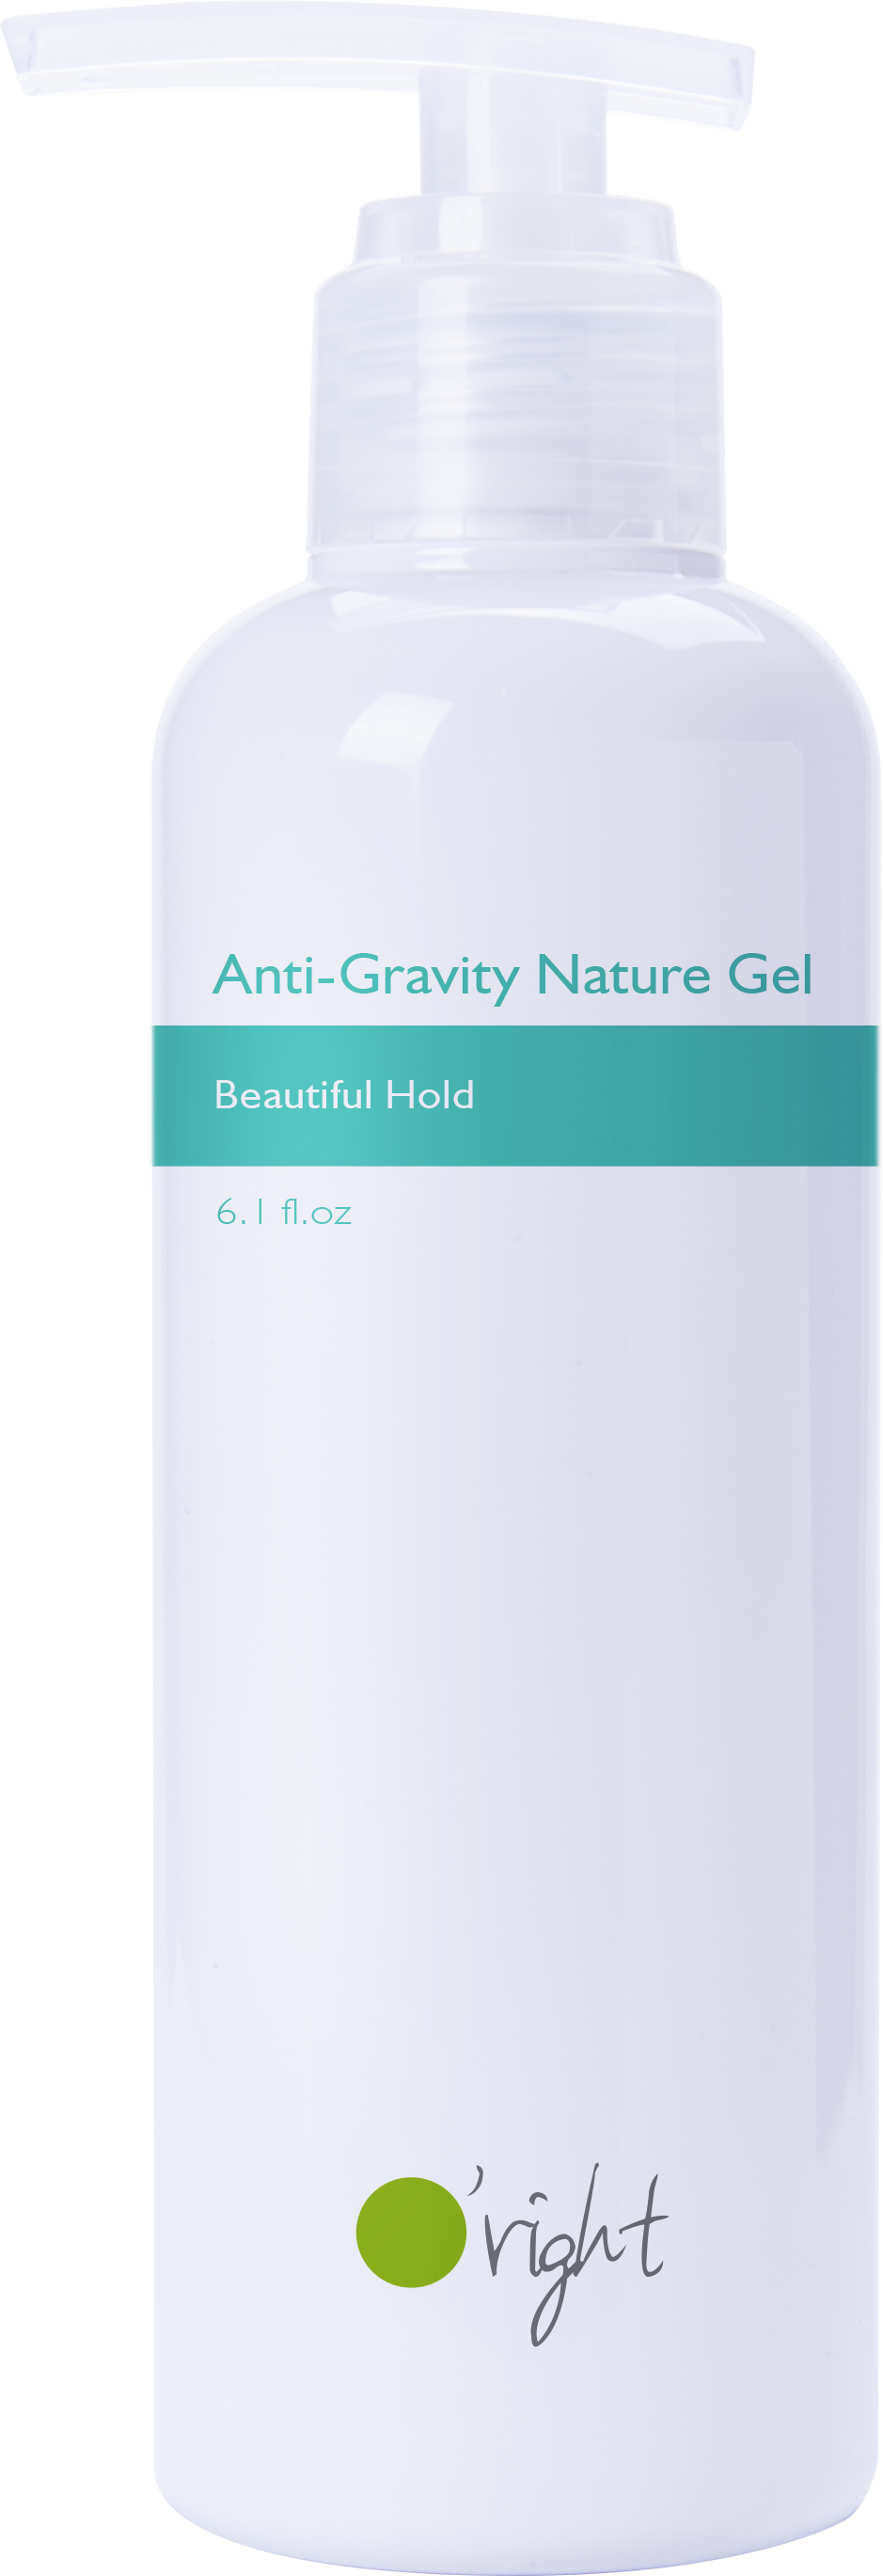 Anti-Gravity Nature Gel 180ml